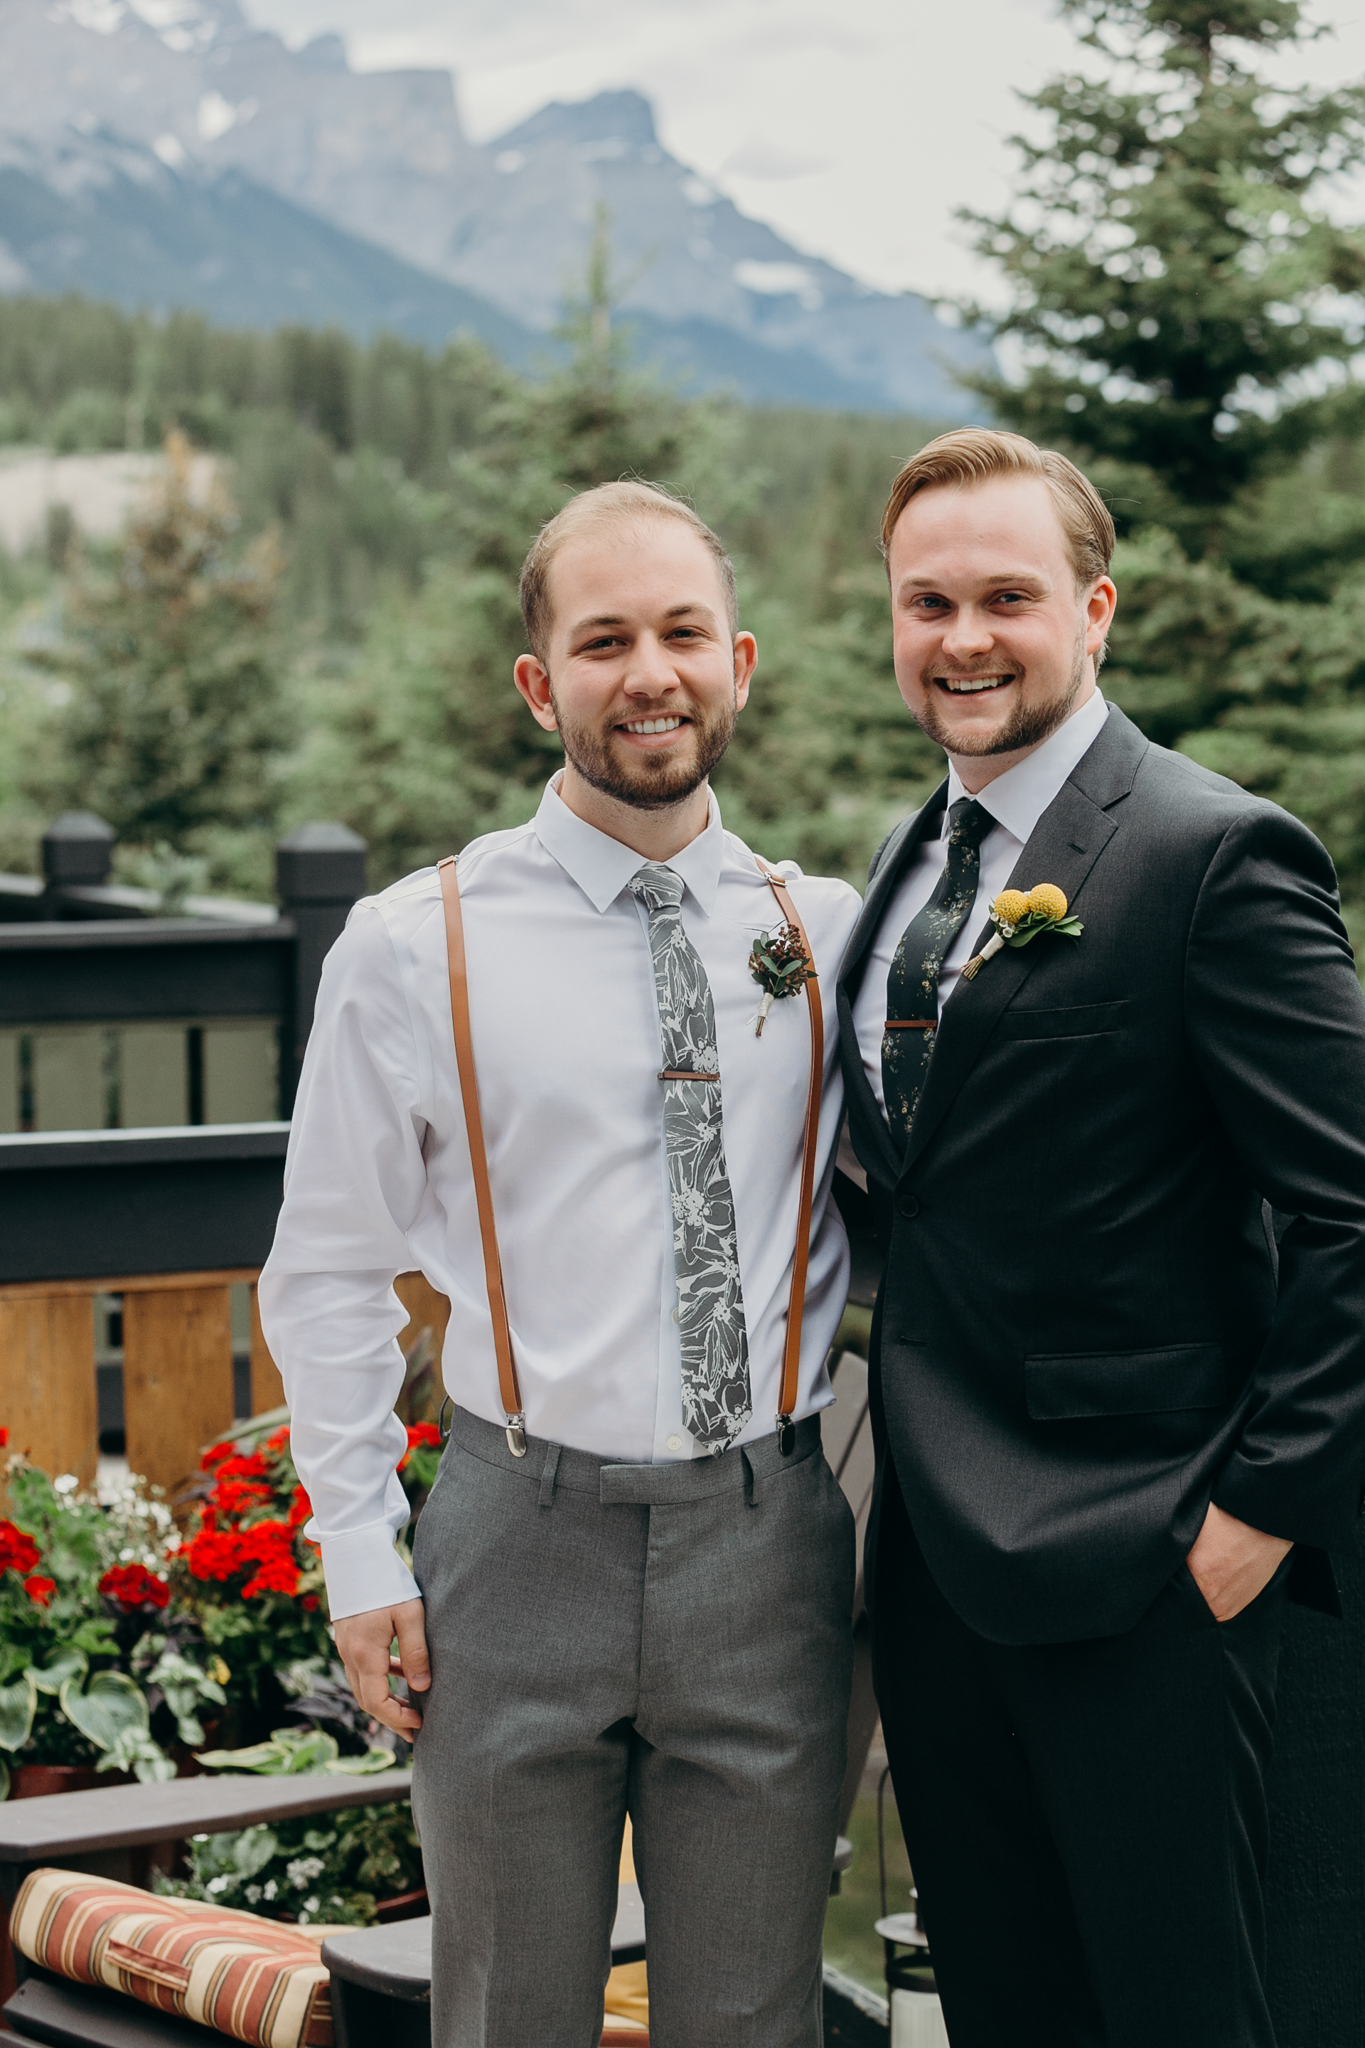 Groom and groomsman portrait smiling destination wedding photographer Canmore Banff